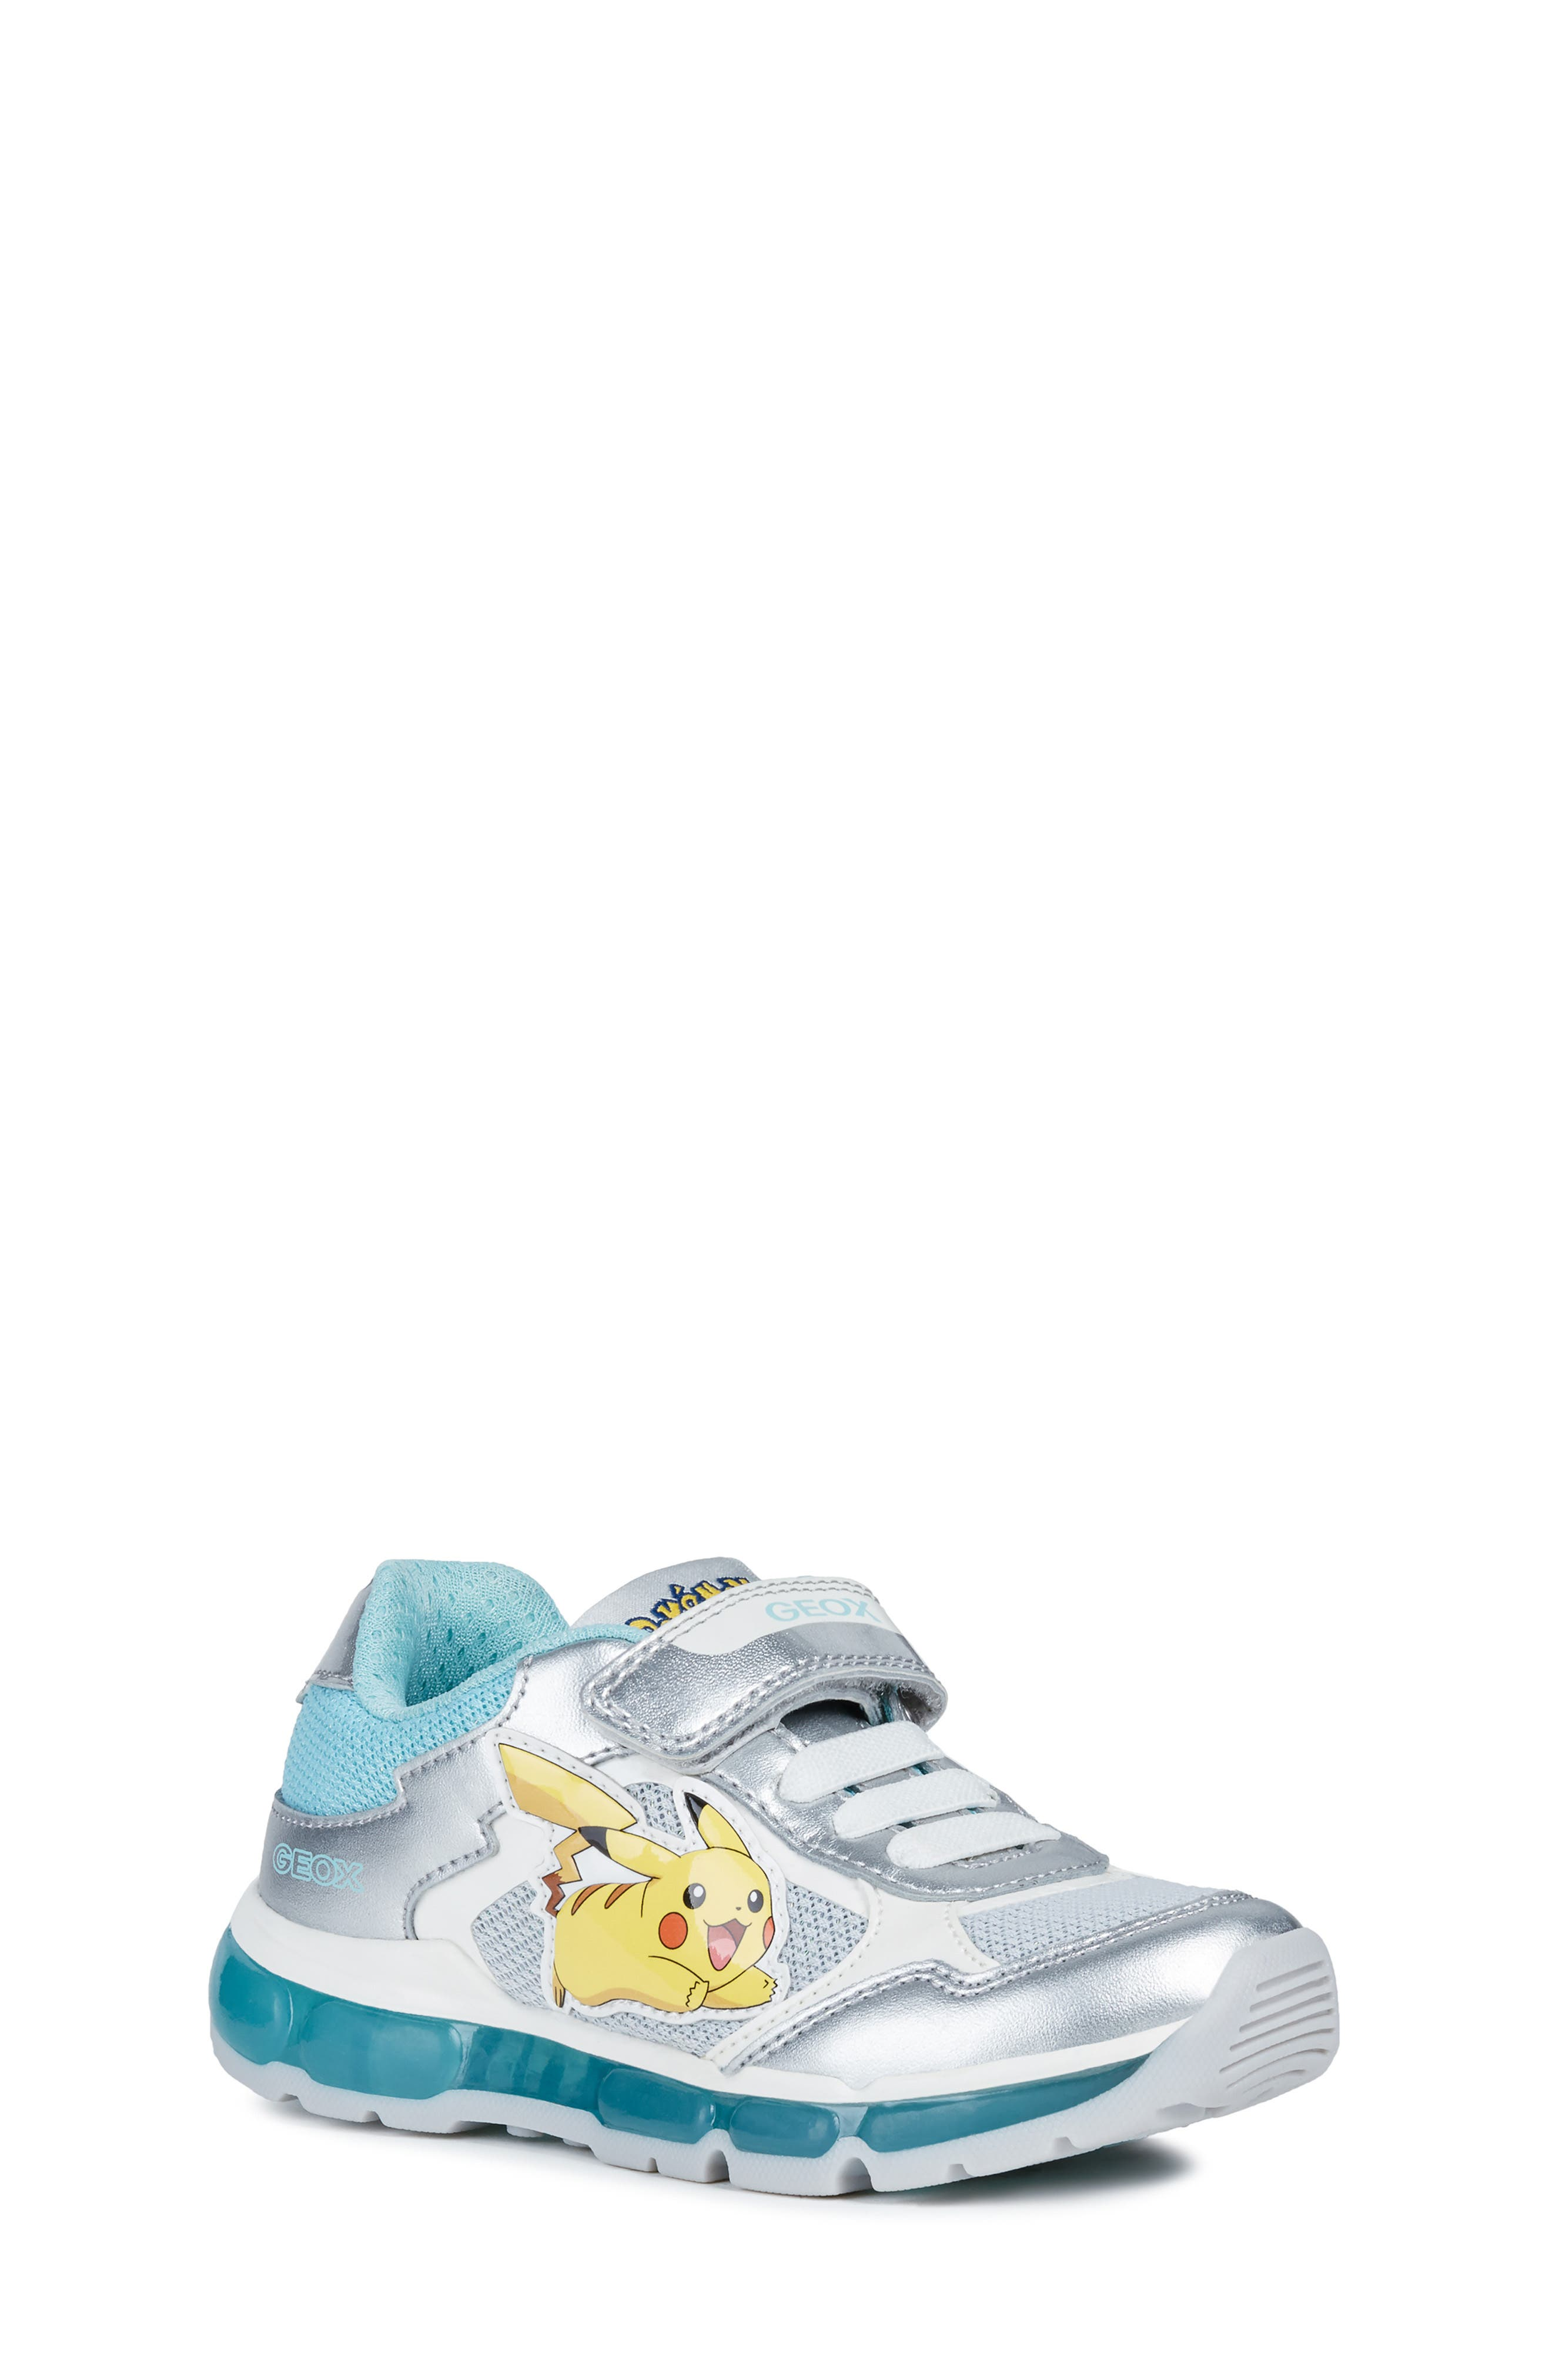 Toddler Geox Jr Android LightUp Sneaker Size 105US  28EU  Metallic